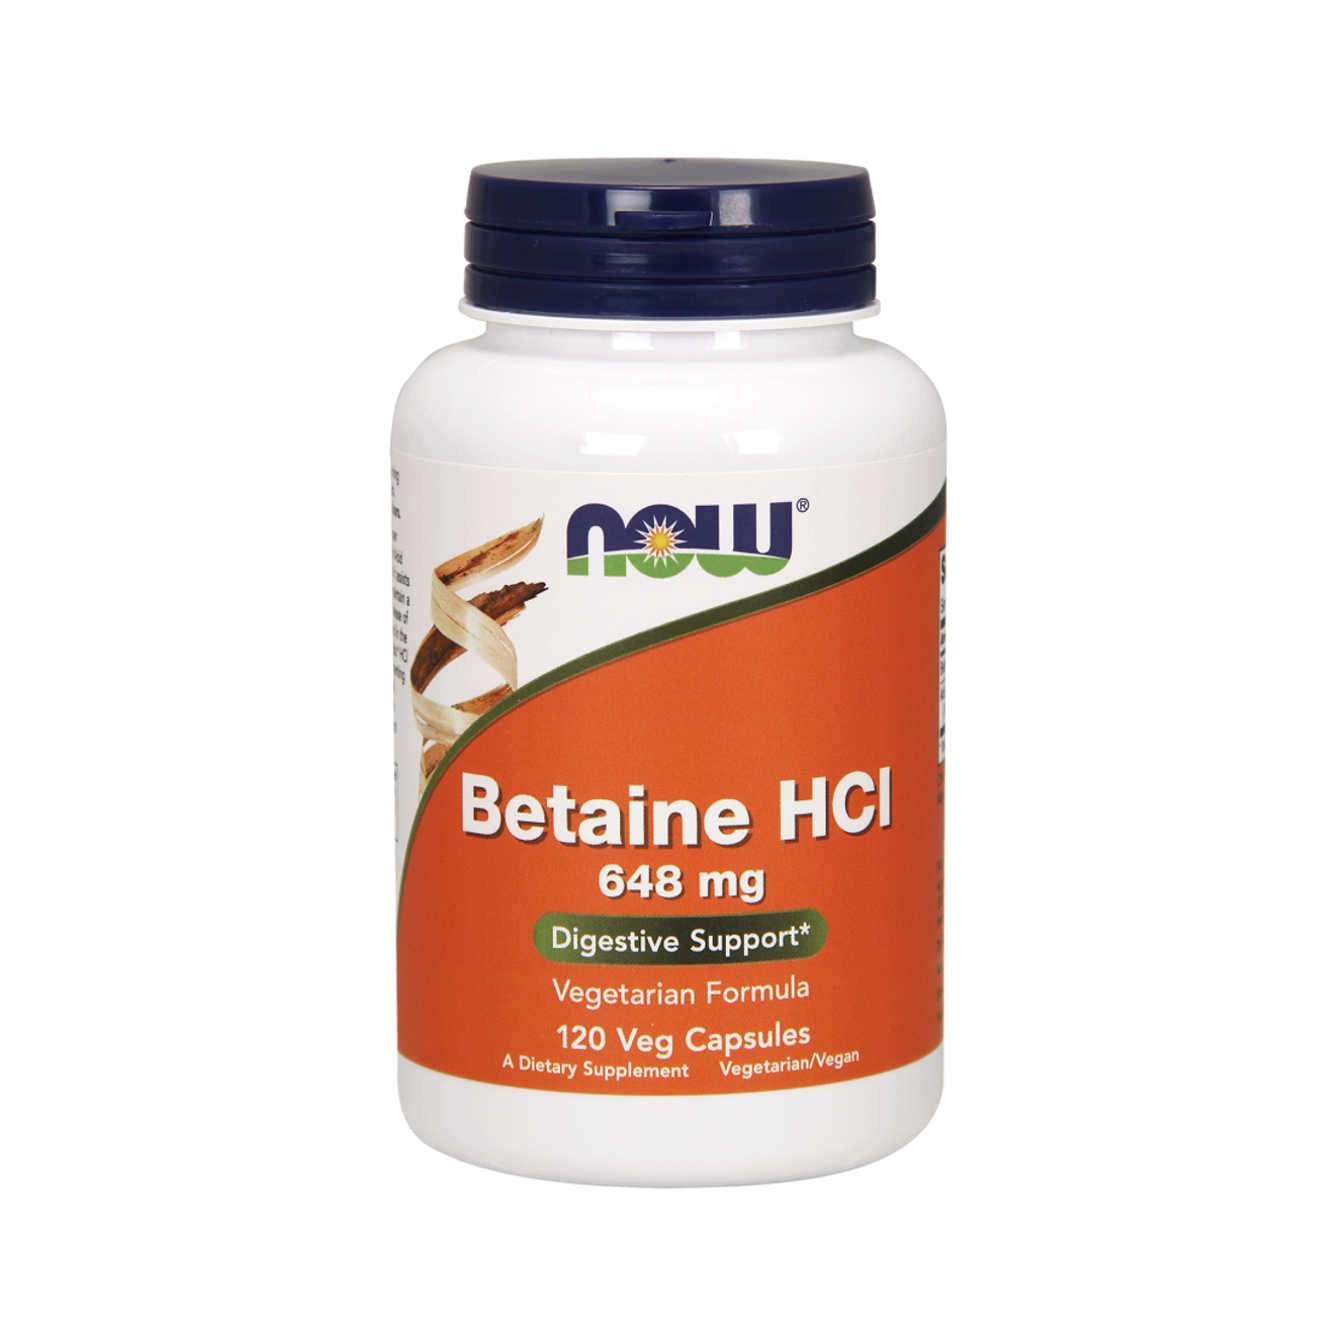 BETAINE HCL 648mg - 120 veg caps